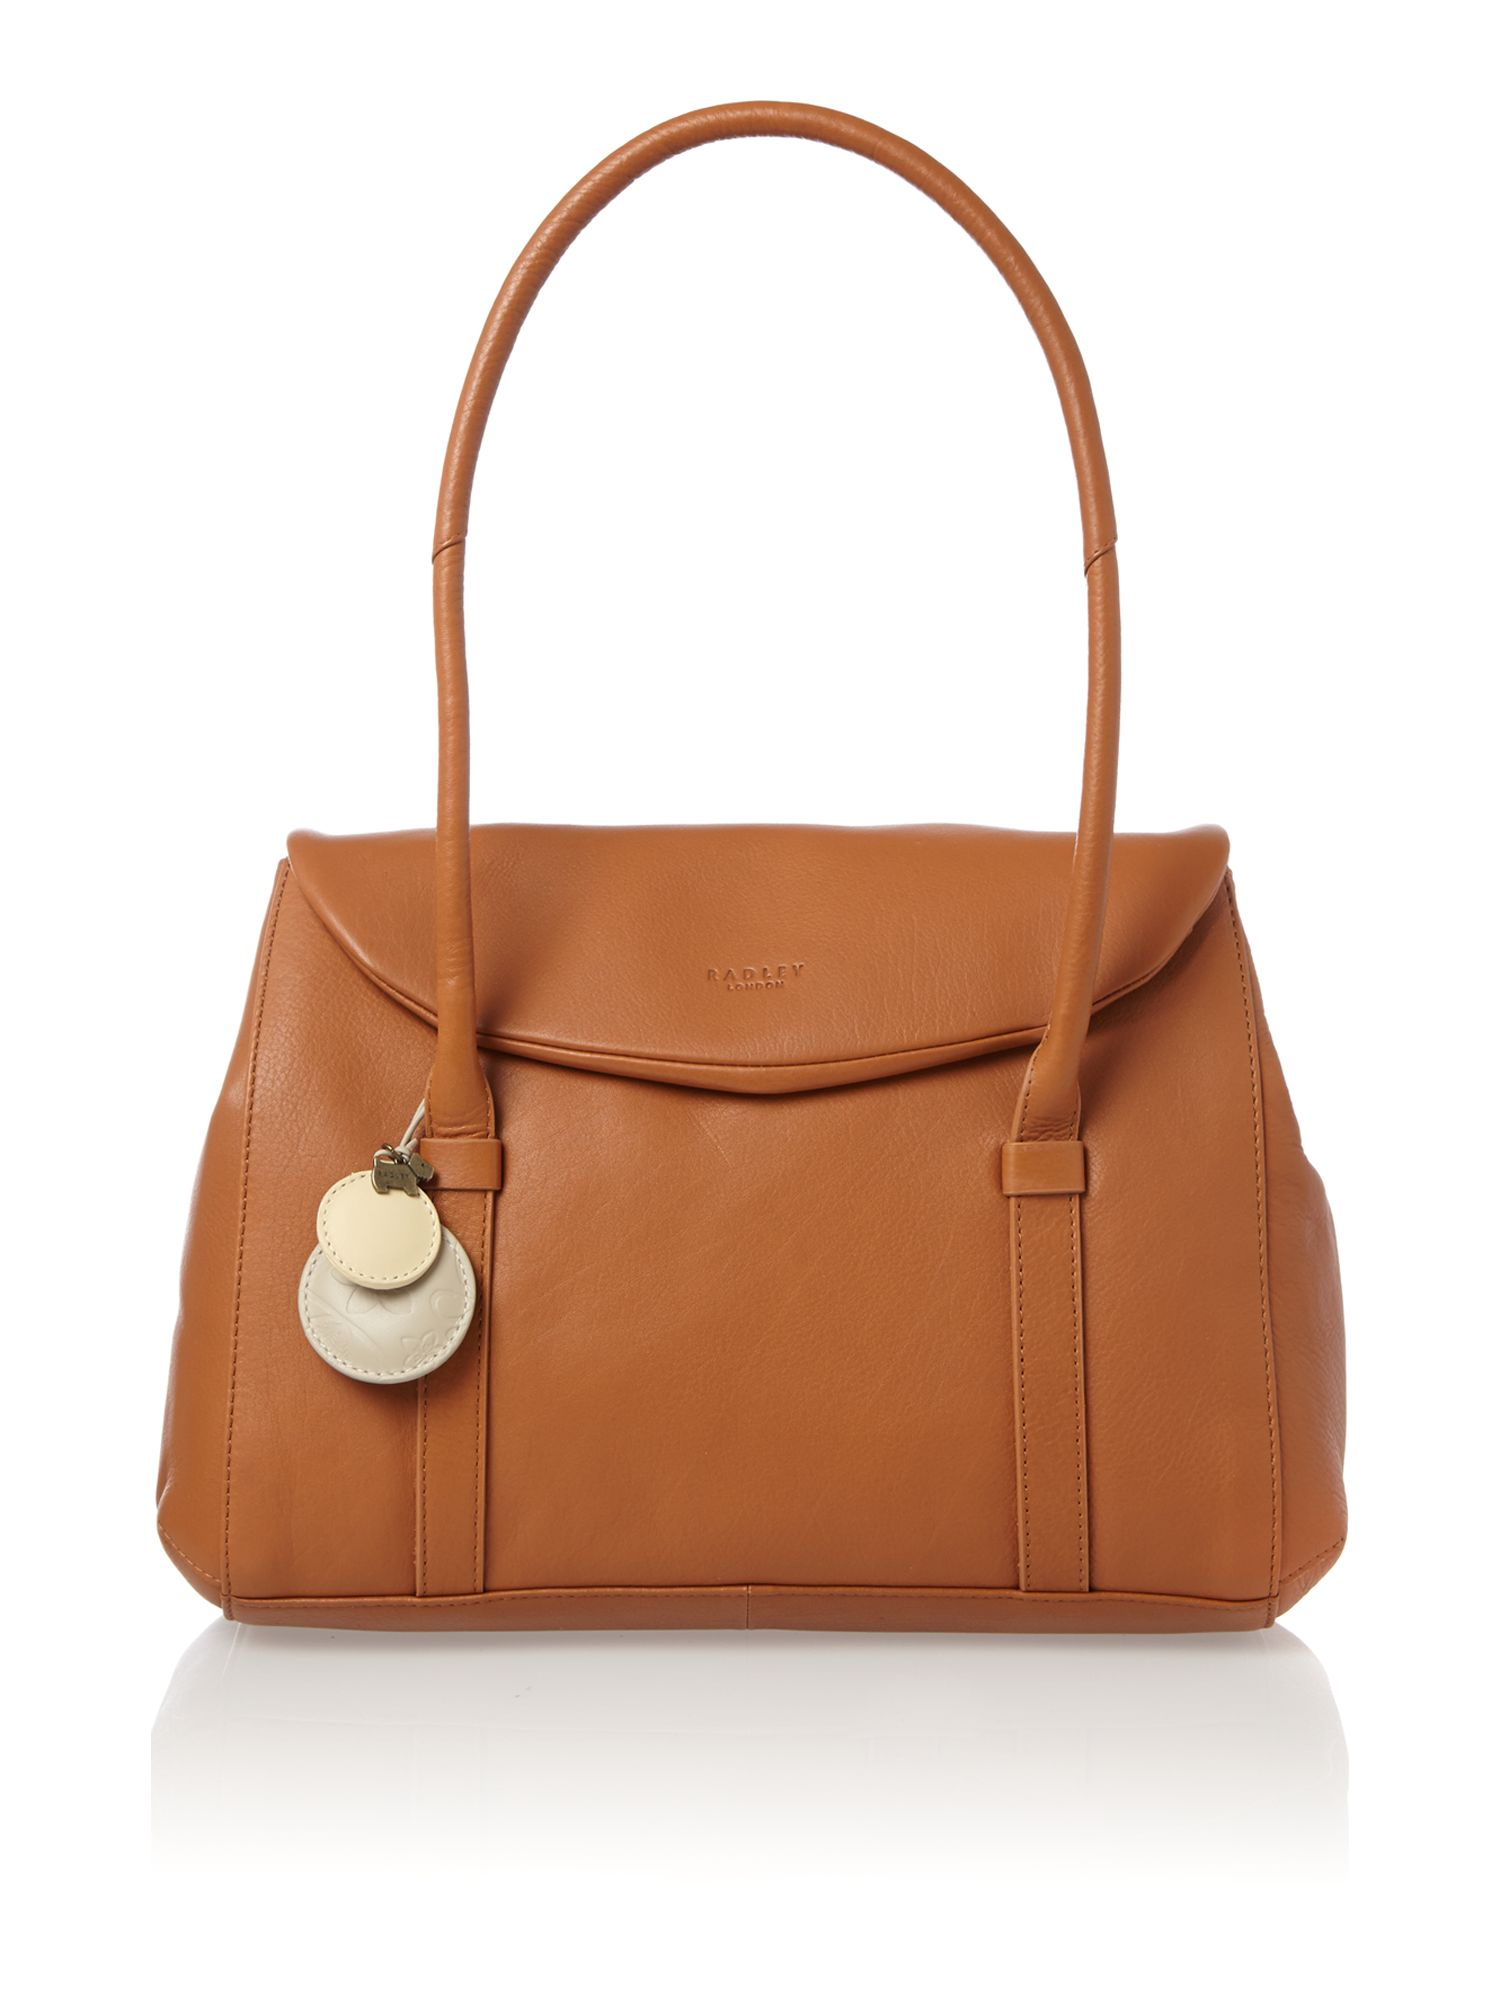 Waterloo medium flapover tote tan leather bag